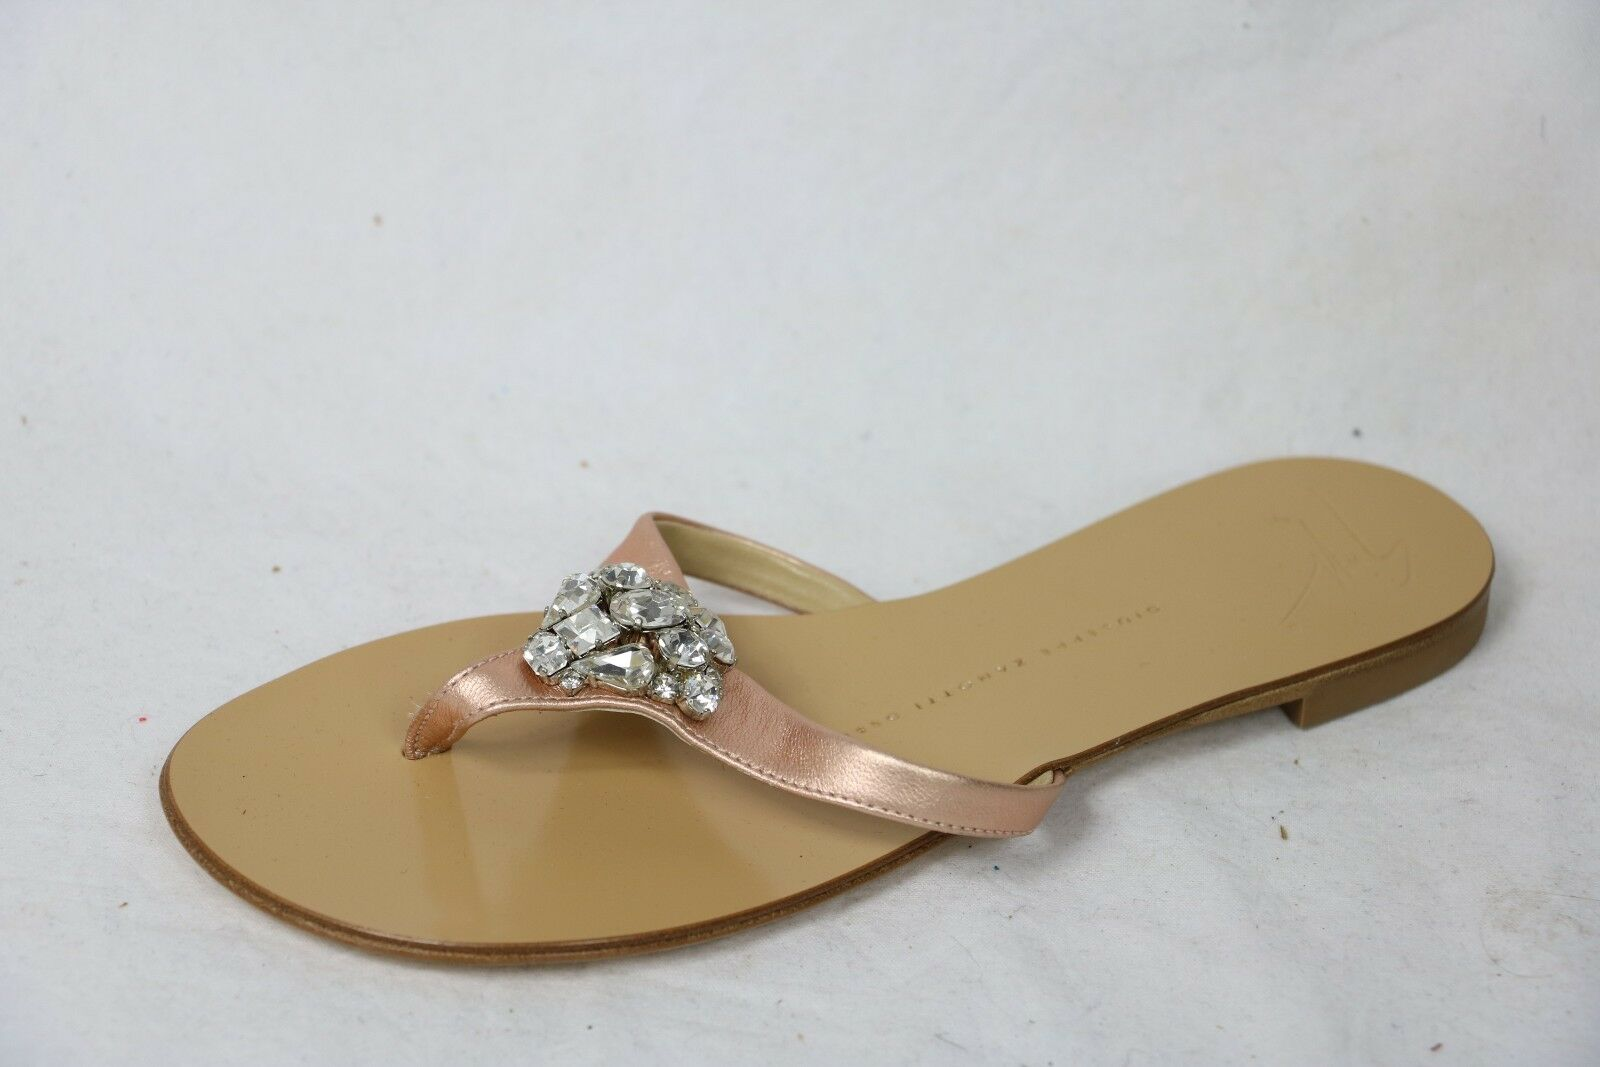 GIUSEPPE ZANOTTI chaussures slides rose cluster crystals 36.5